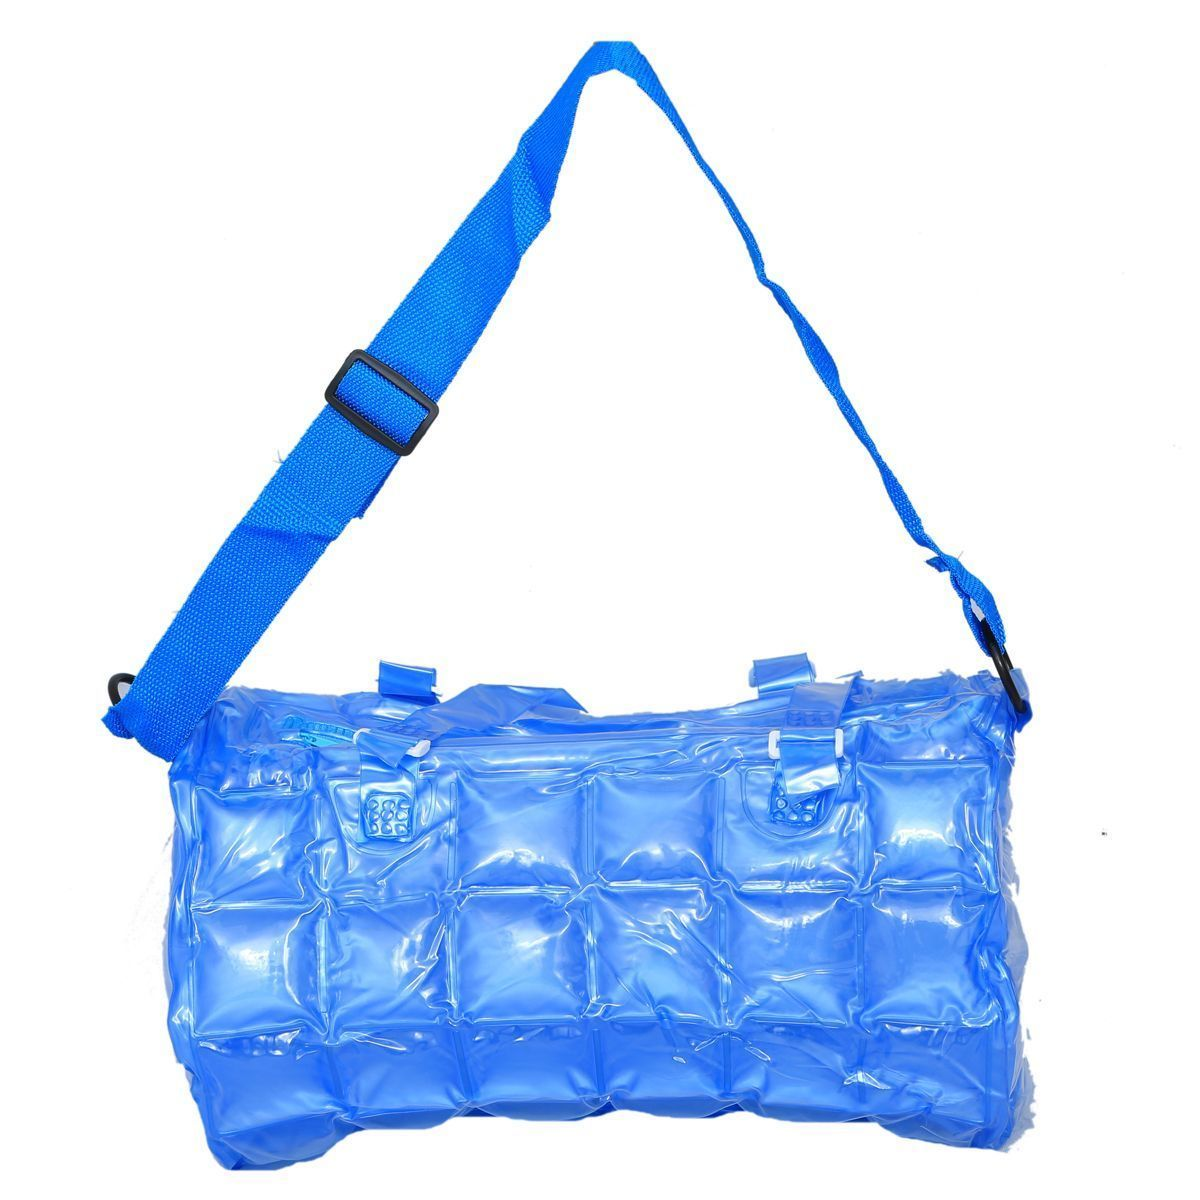 "Kuber Industriesâ""¢ Stylish Shopping Bag,Picnic Bag, Hand Bag in Imported Thick Plastic ,Blow it (Blue) - KI19490"